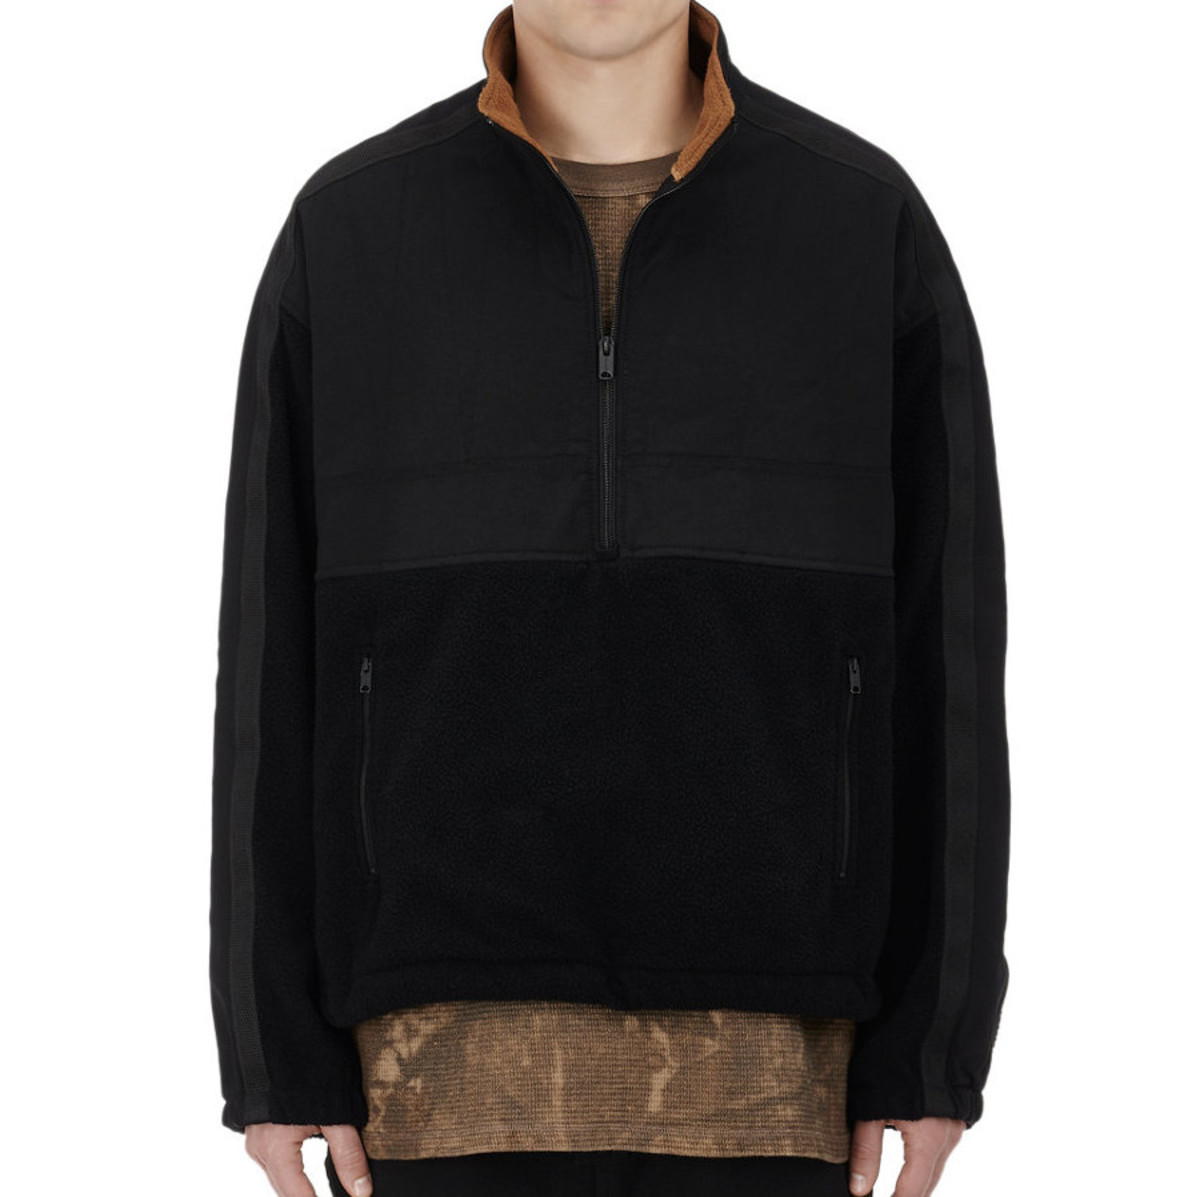 yeezy-season-3-fleece-half-zip-sweatshirt.jpg